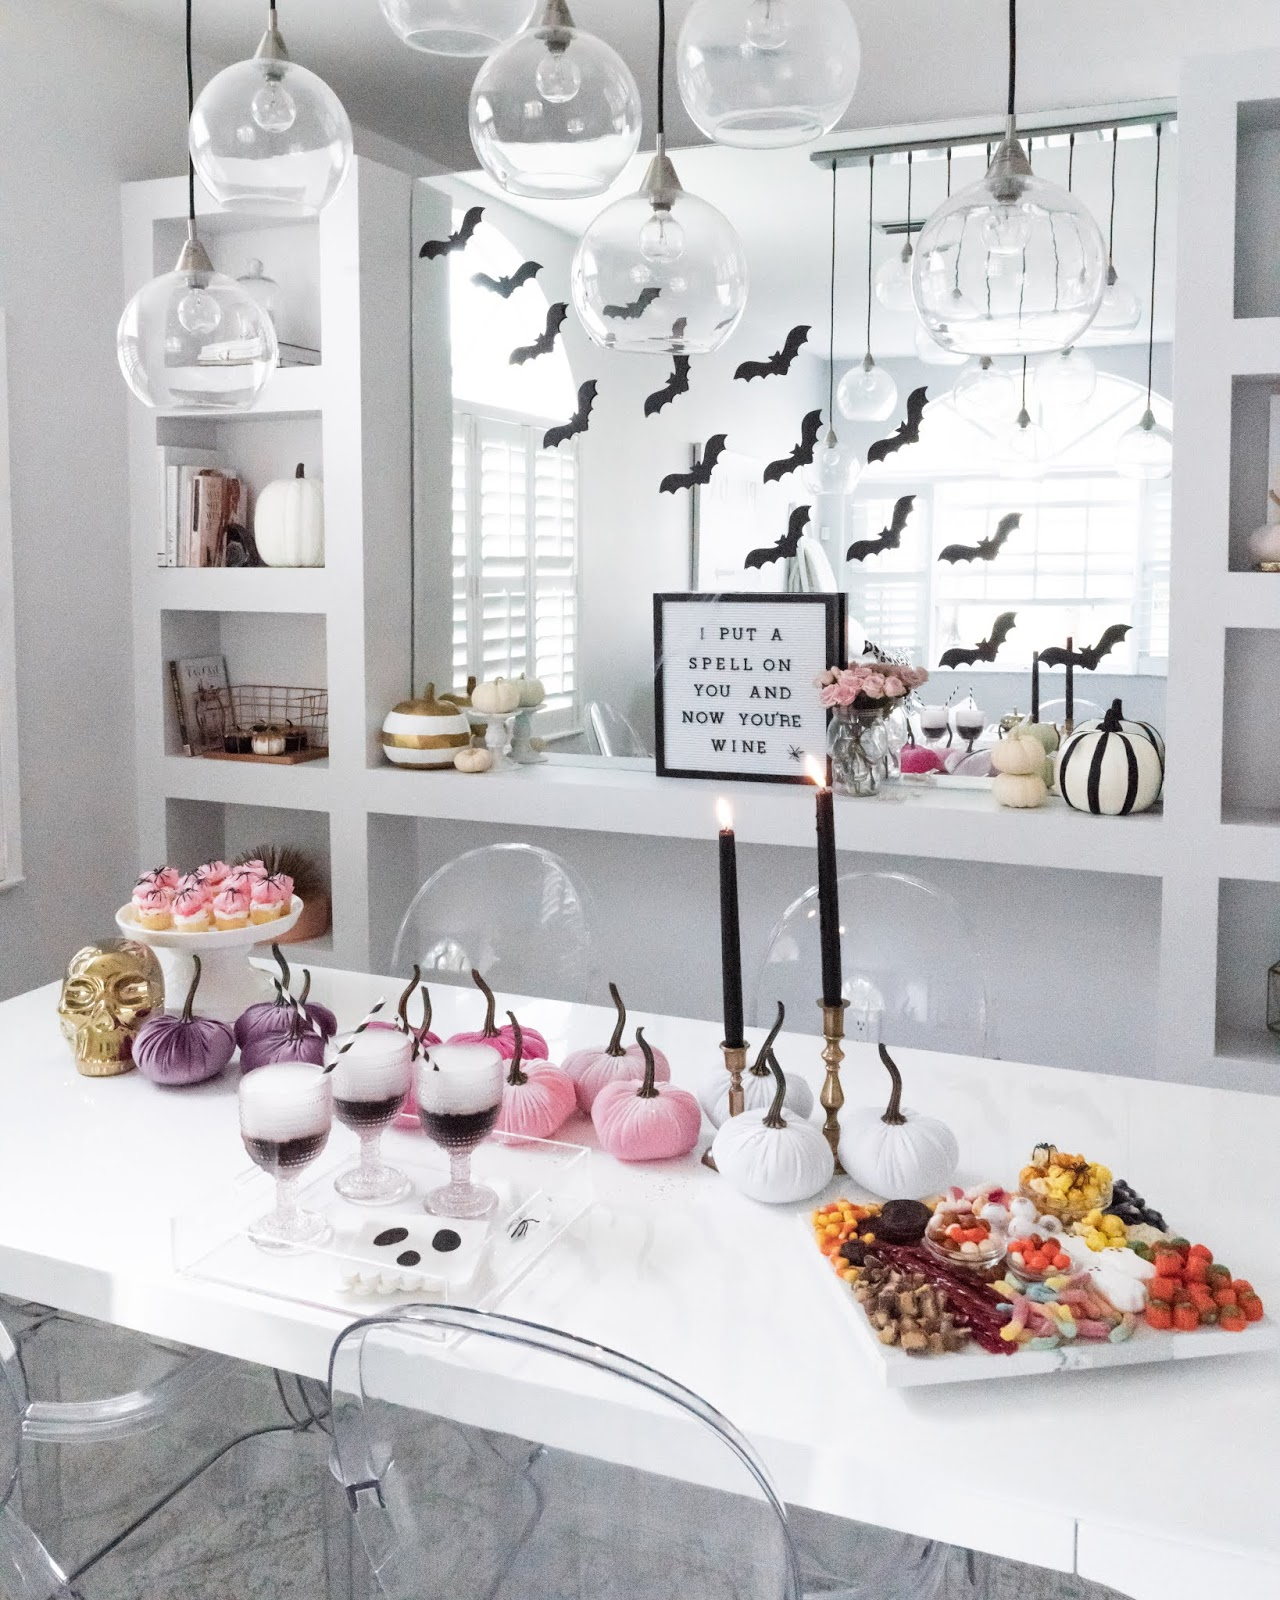 Girly halloween party ideas: drinks, treats, and decor